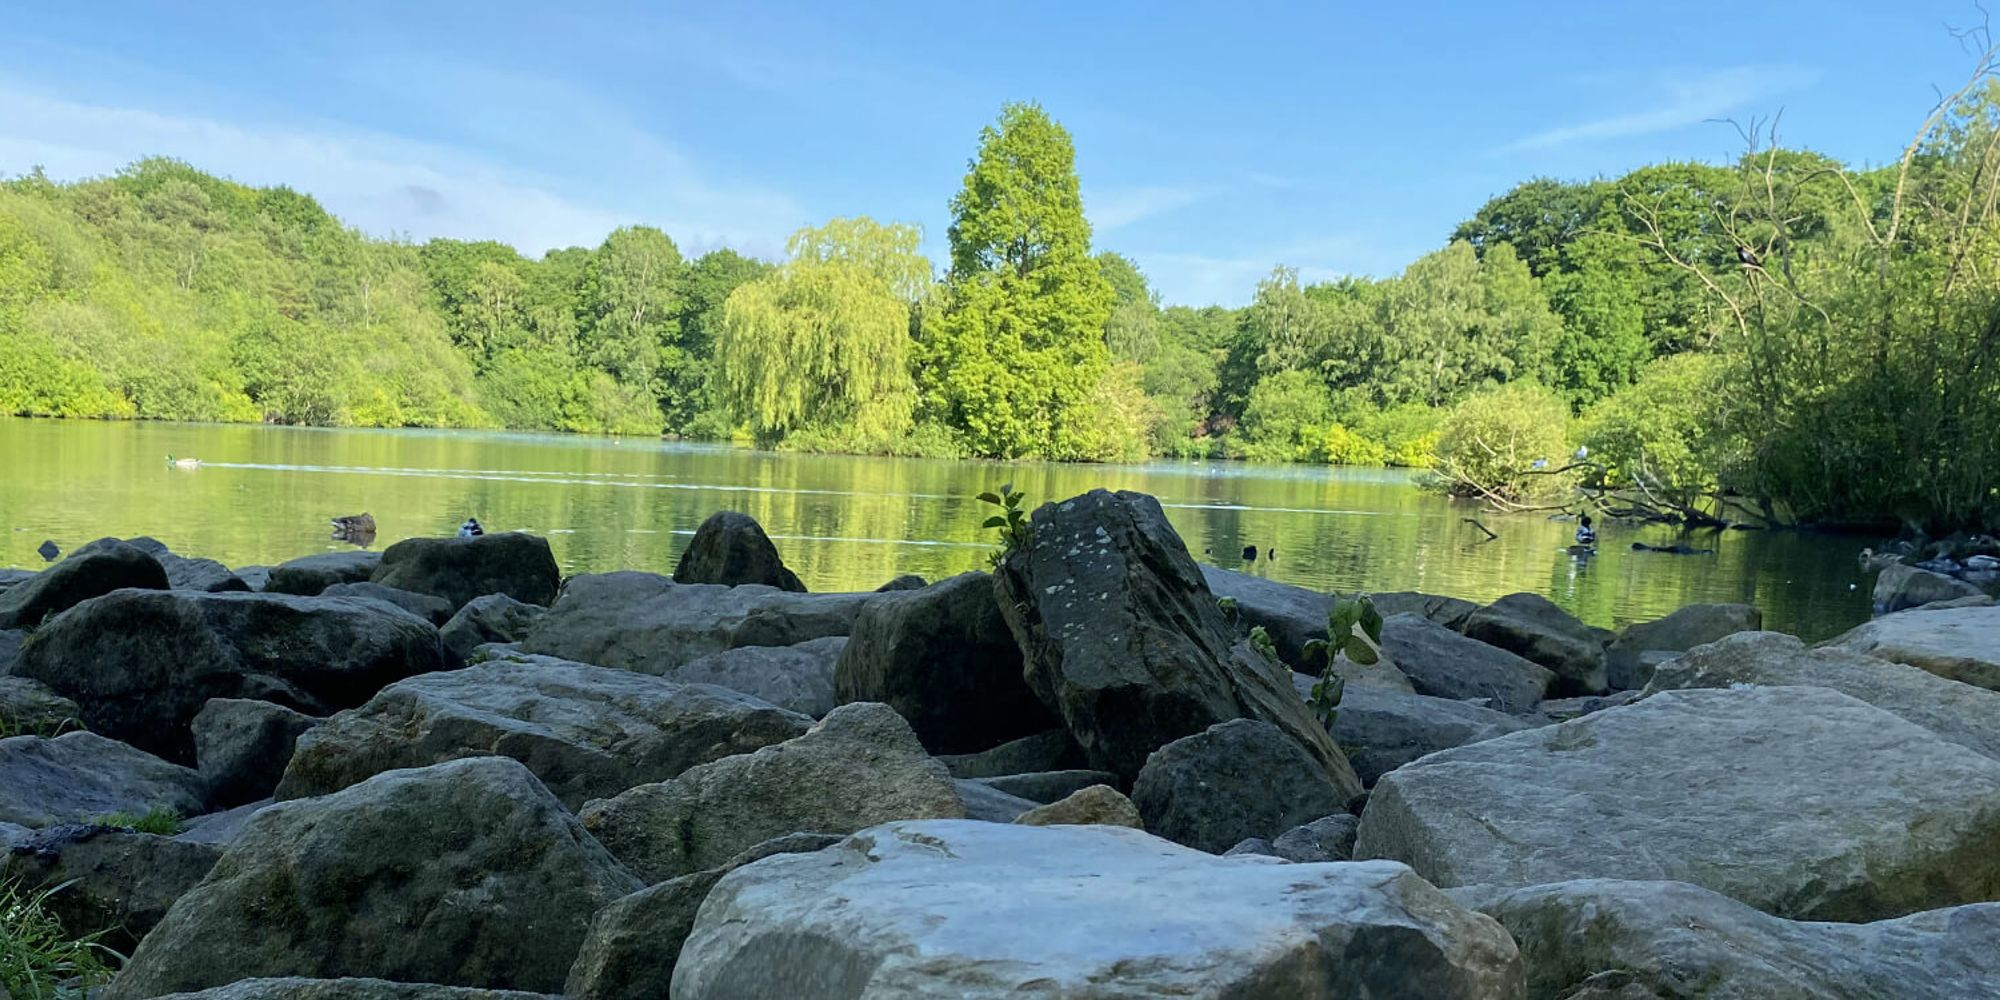 Golden Acre Park lake from a low angle over rocks